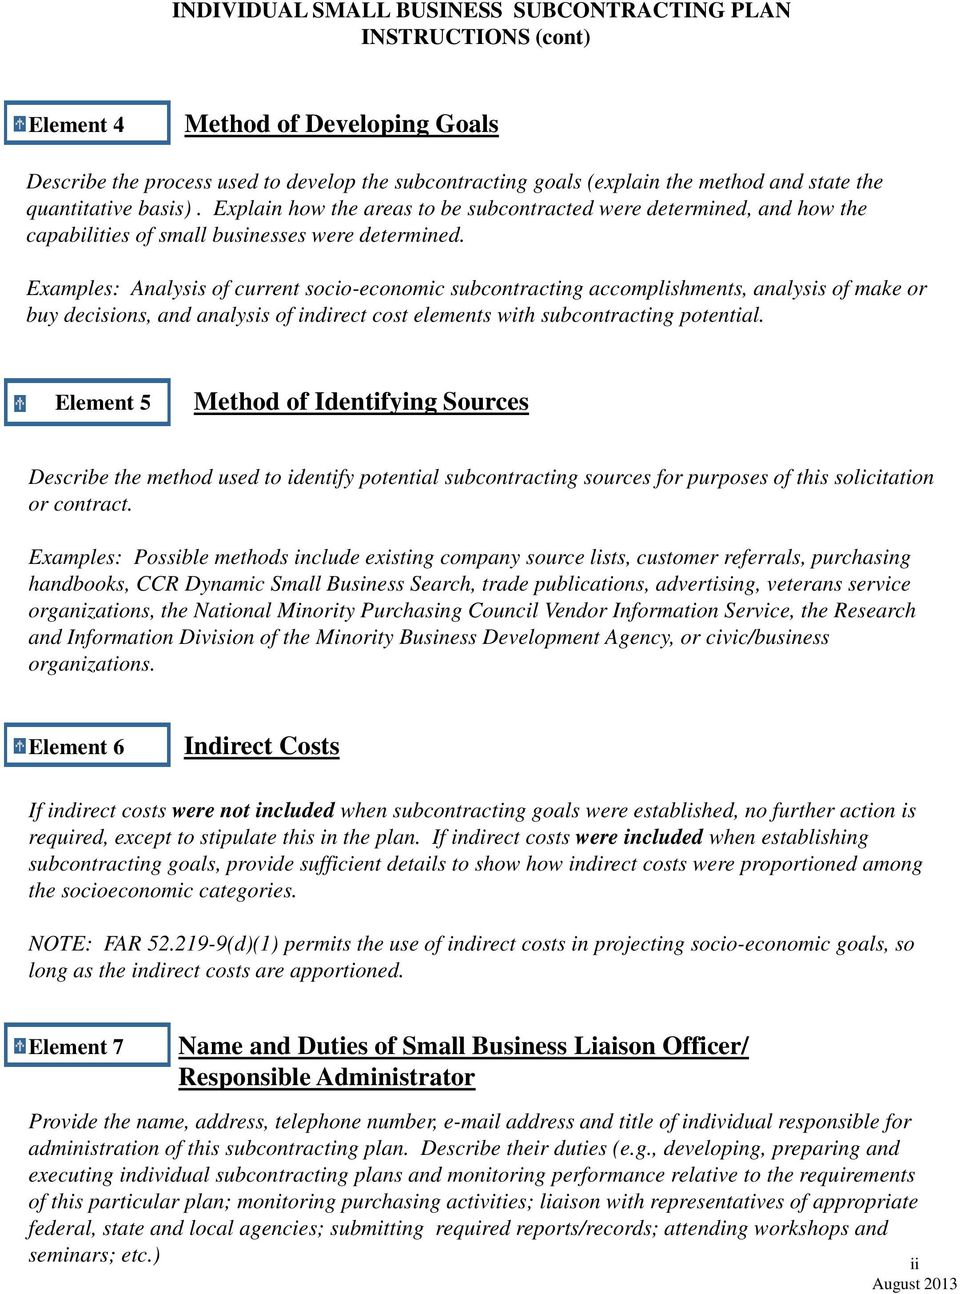 INDIVIDUAL SMALL BUSINESS SUBCONTRACTING PLAN INSTRUCTIONS